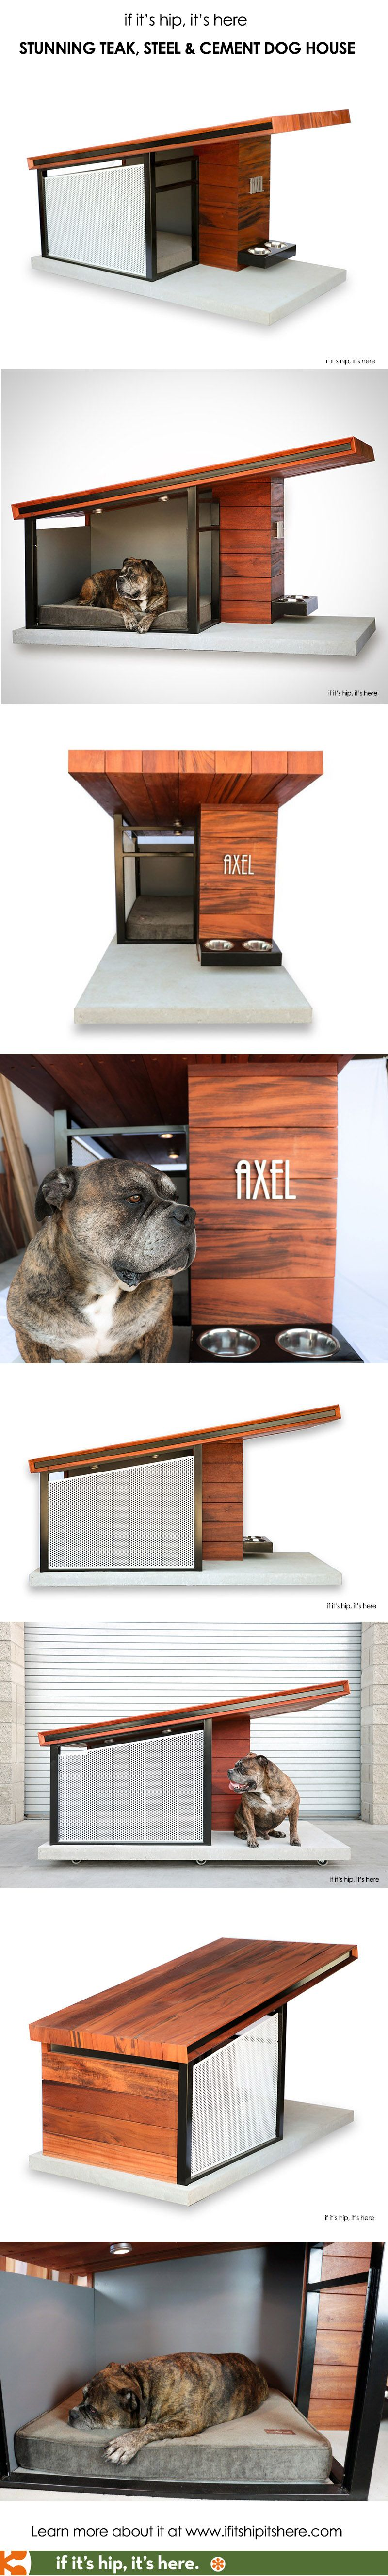 RAH Design MDK9 Dog Haus Is Modern Luxury For The Discriminating Canine